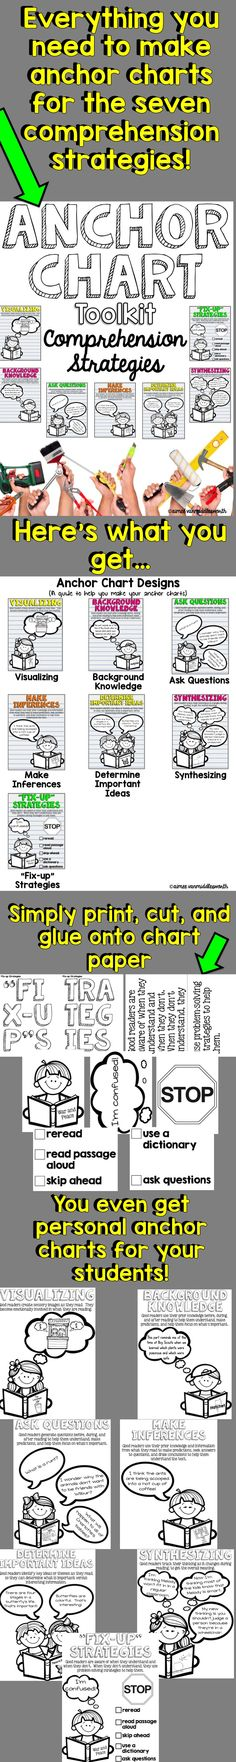 Need help making anchor charts for comprehension strategies?